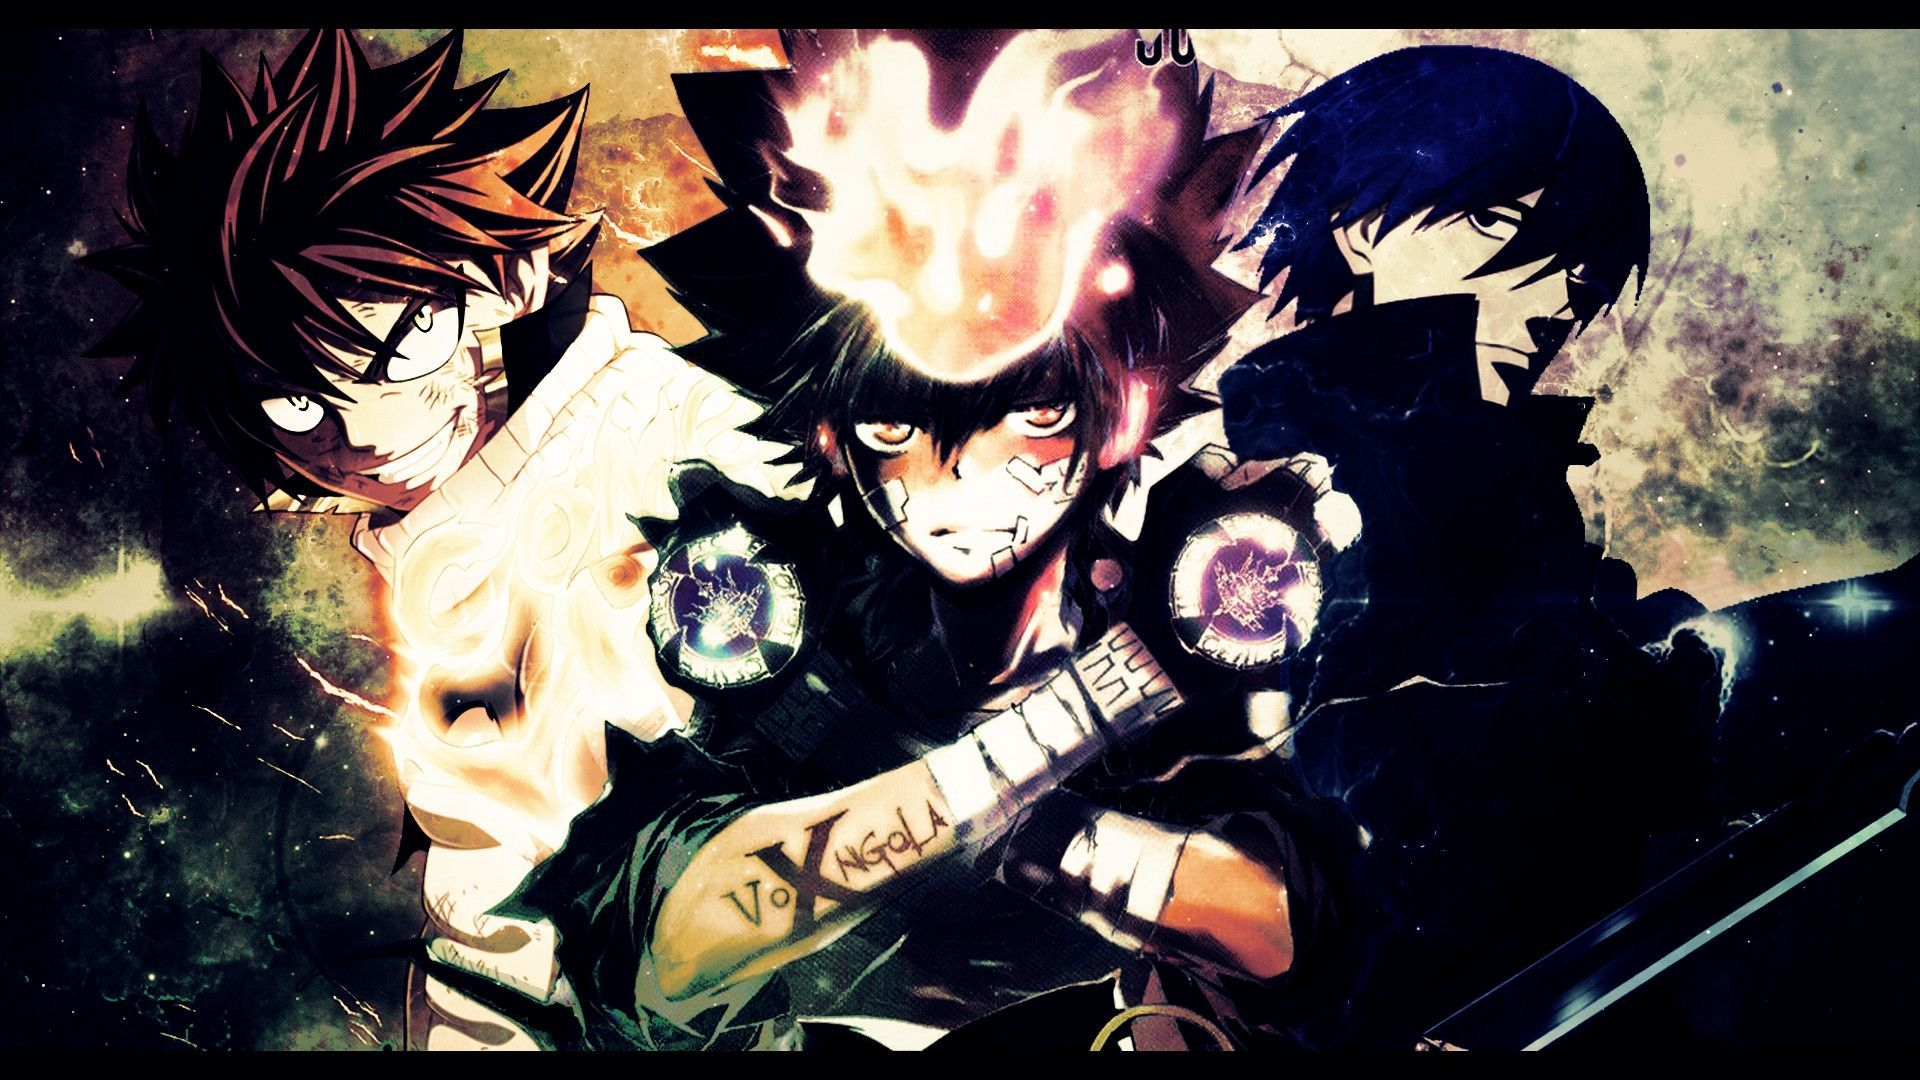 Epic Anime Wallpapers HD 1920x1080